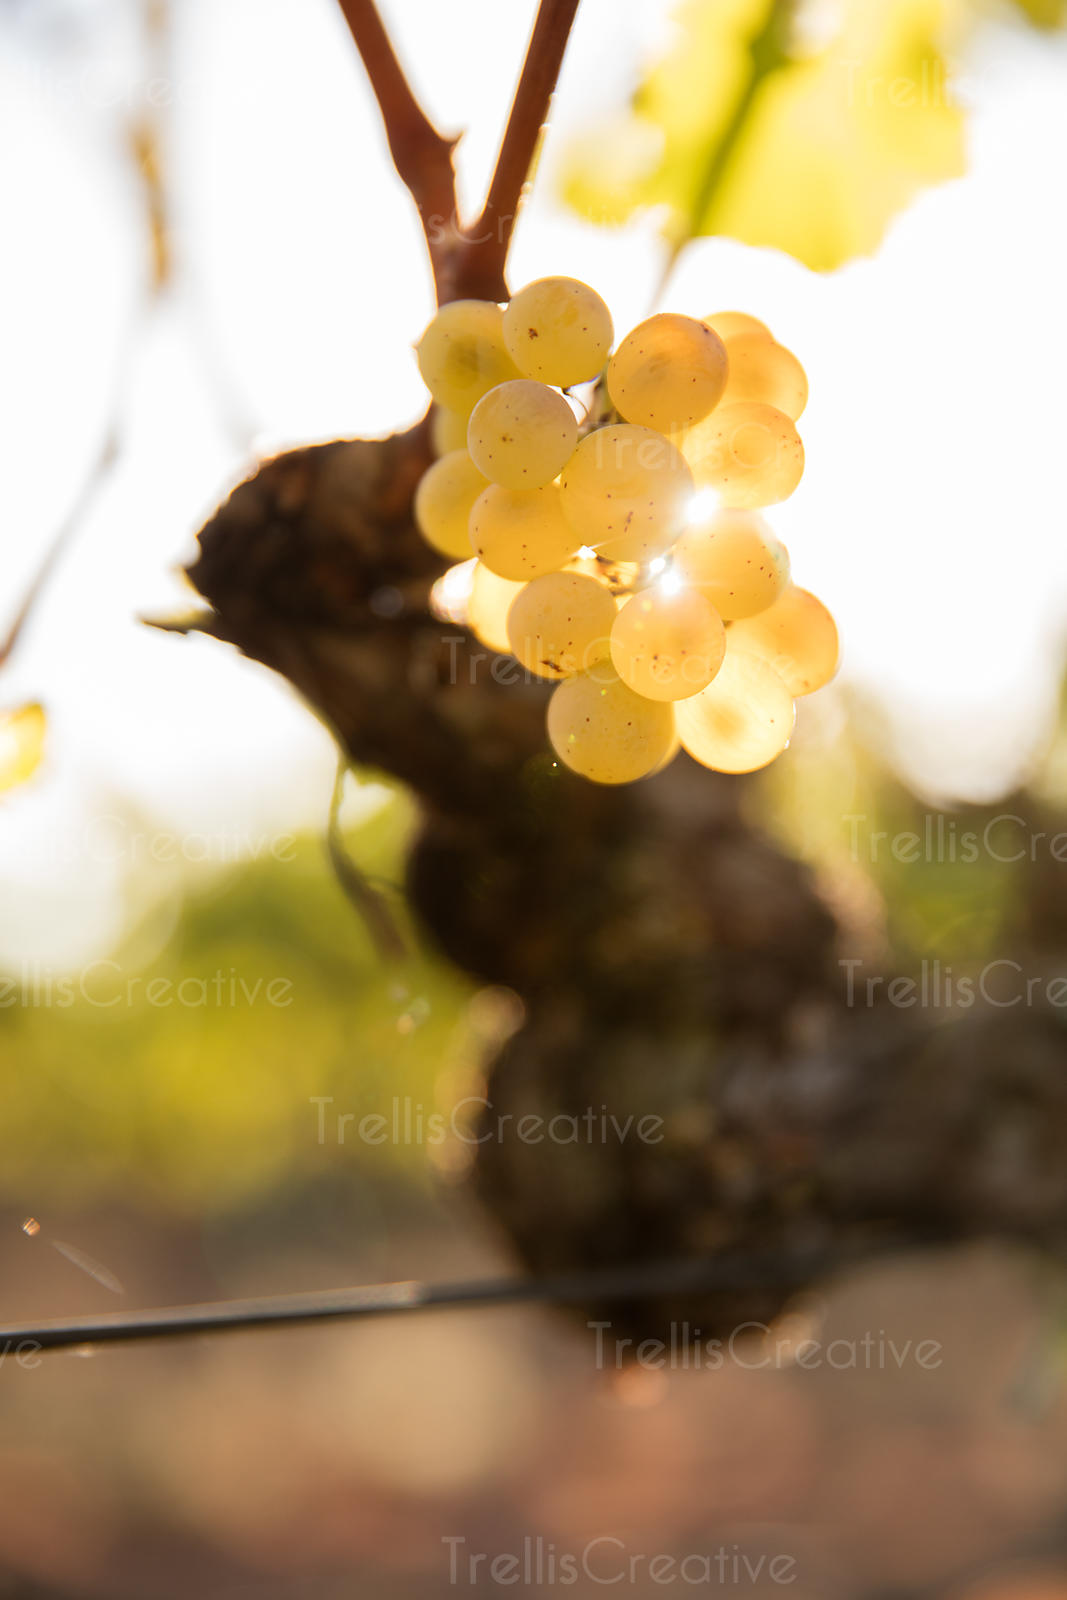 Ripe sauvignon blanc grapes hanging on grapevine